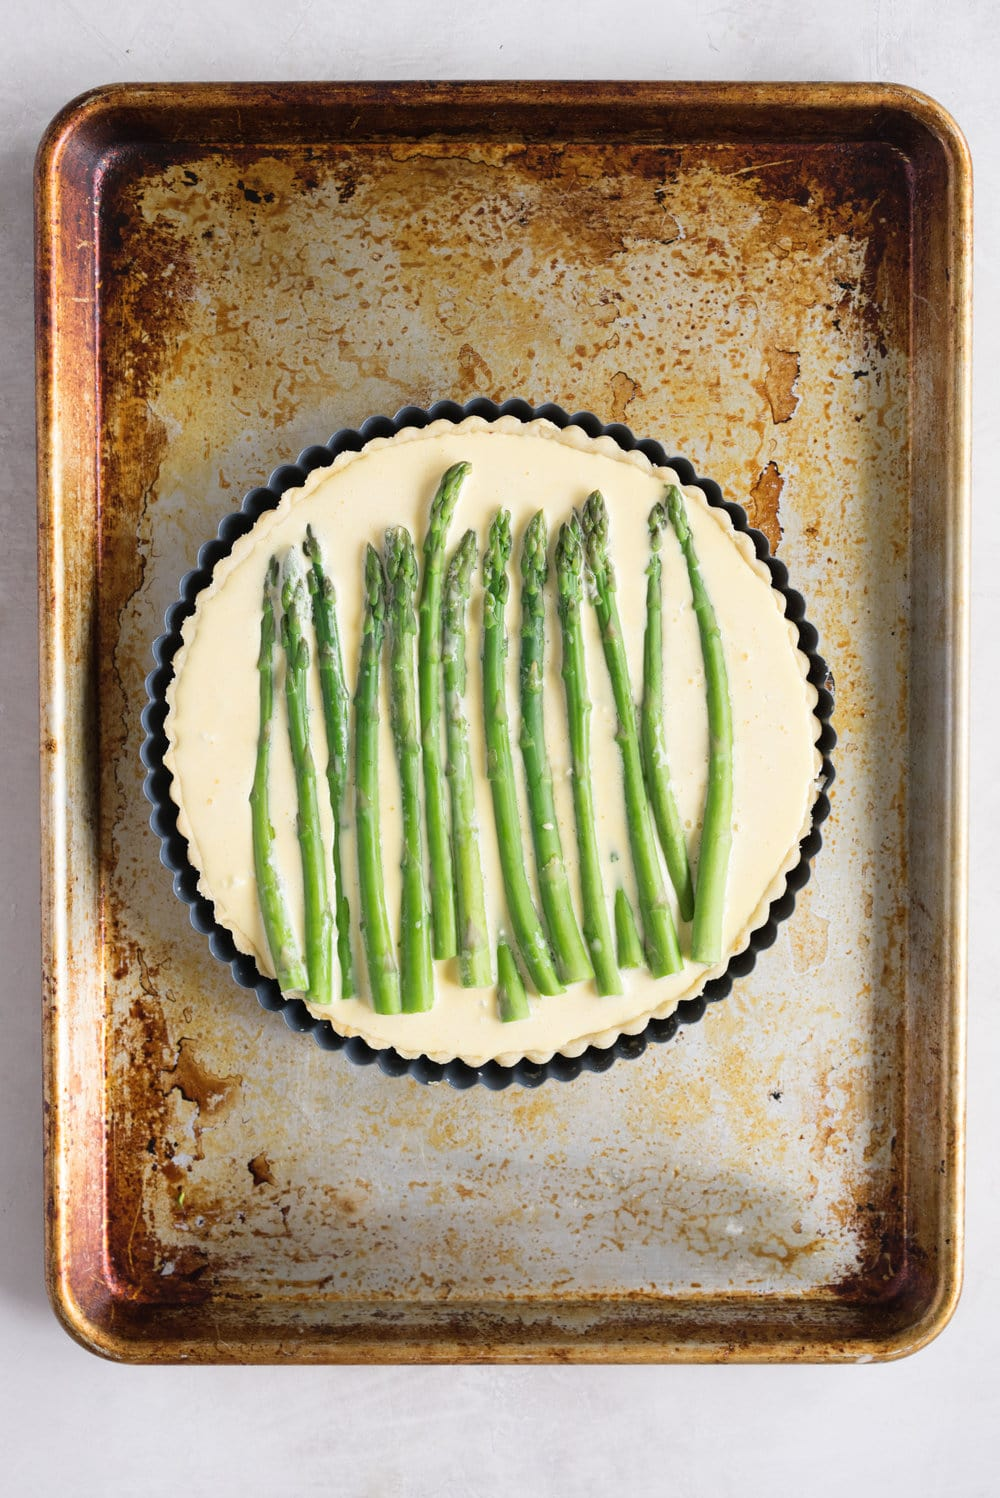 Asparagus, Goat Cheese, and Caramelised Onion Quiche - Flaky pie dough, caramelised onion, creamy goat cheese, baked into the perfect quiche. A great way to use up bits and bobs in your fridge. Would also be great with broccoli! #quiche #caramelisedonion #savouryquiche #savoryquiche #asparagus #goatcheese #chevre